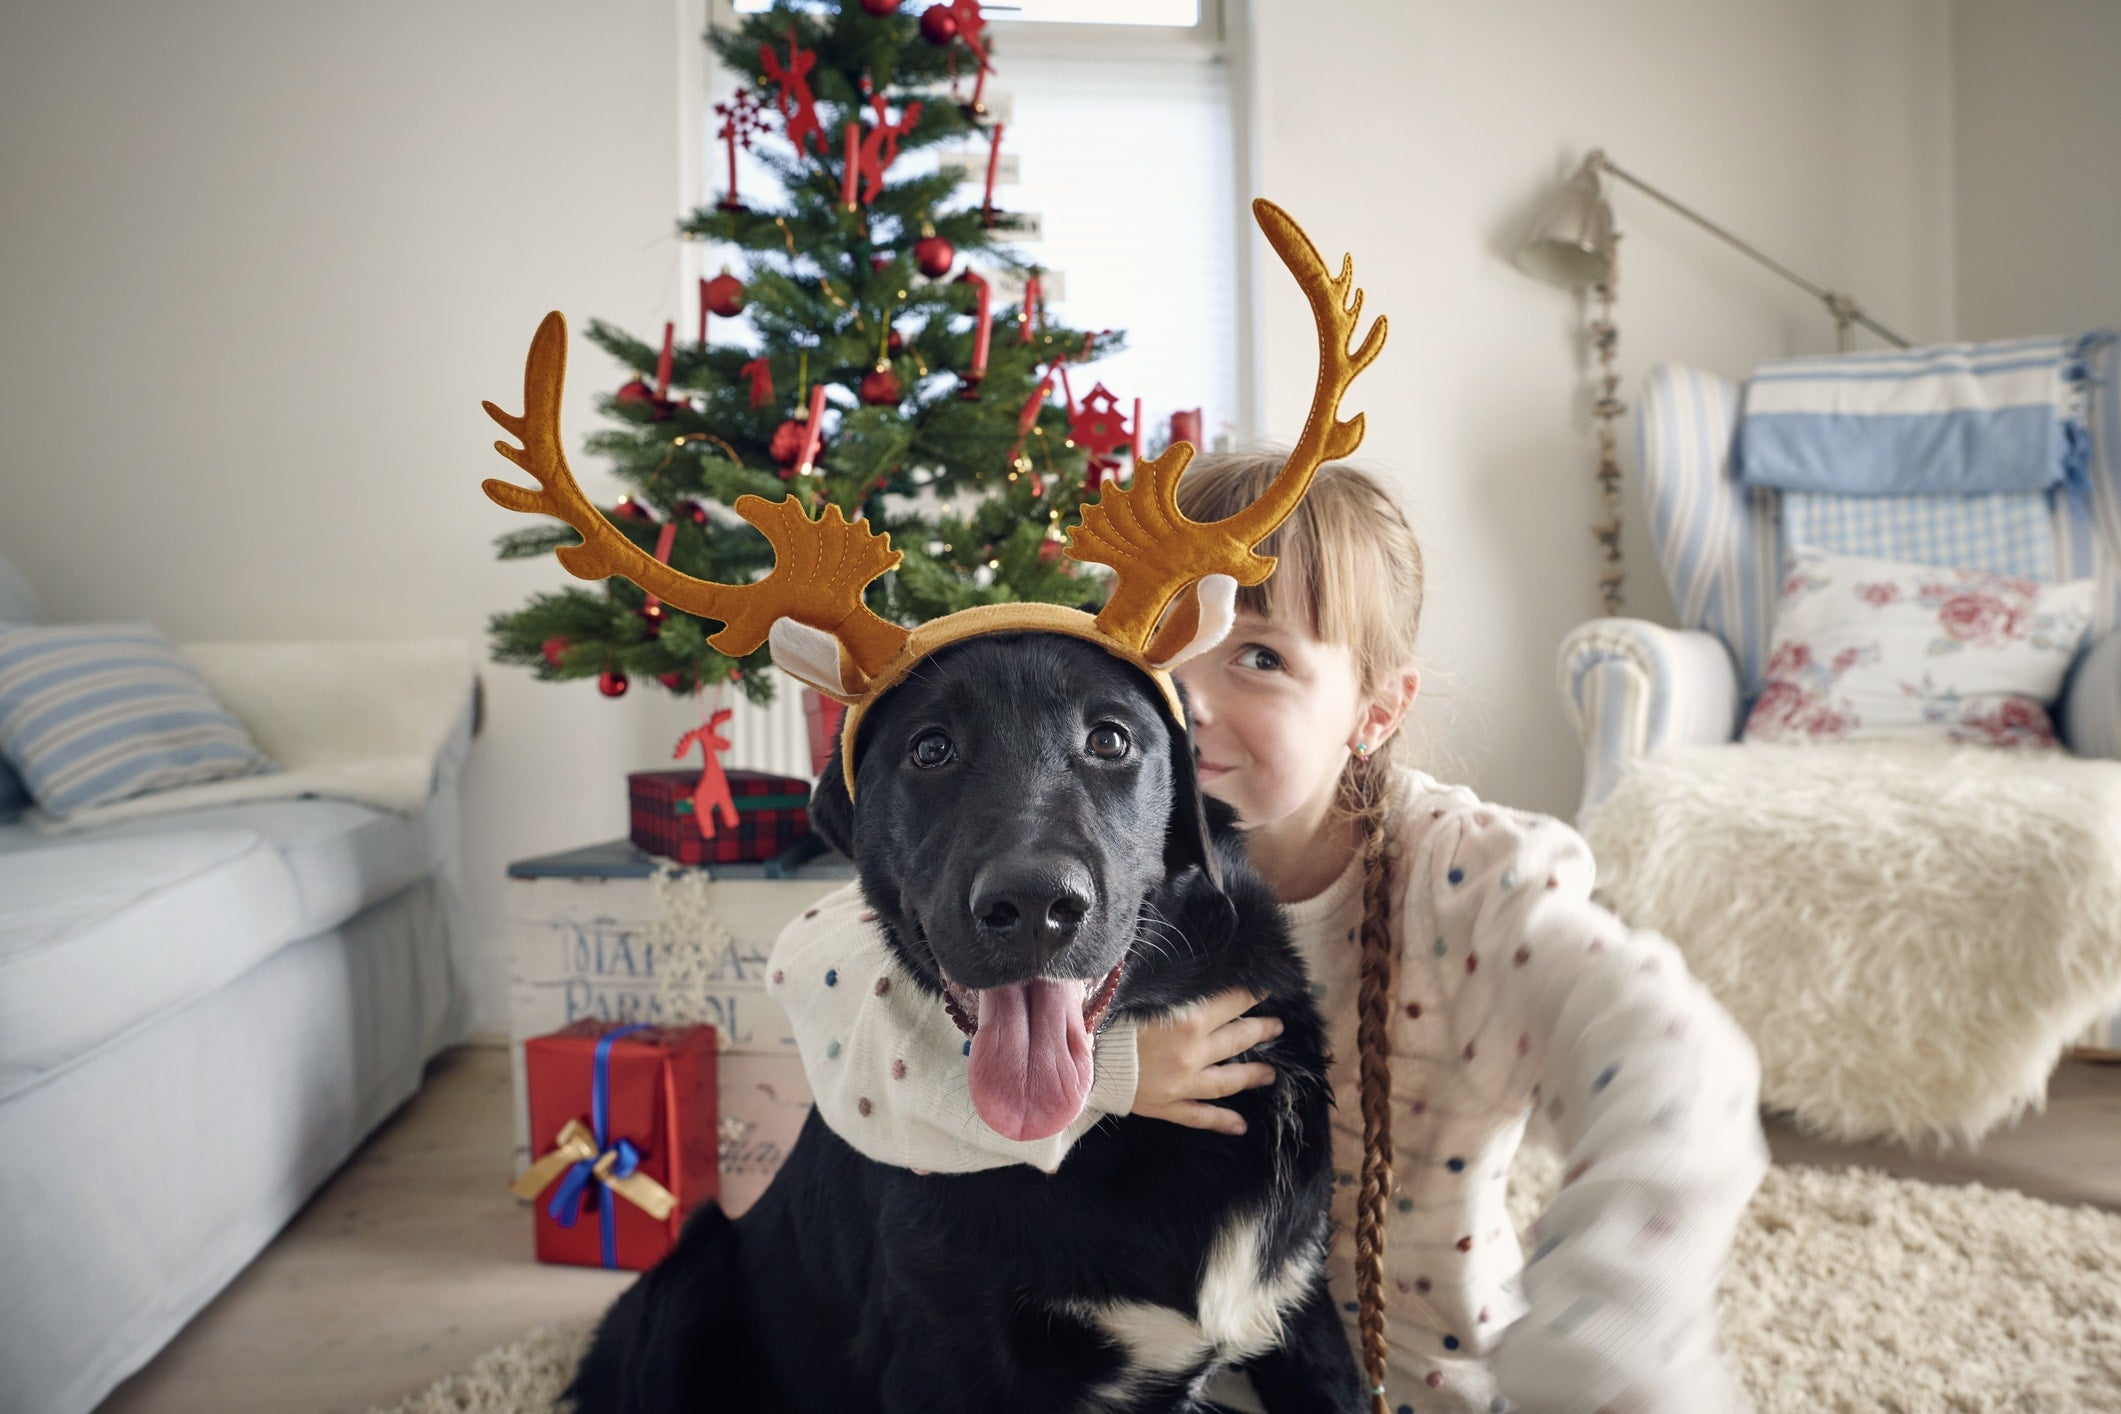 15 Pet Gifts For Pet Owners This Christmas image